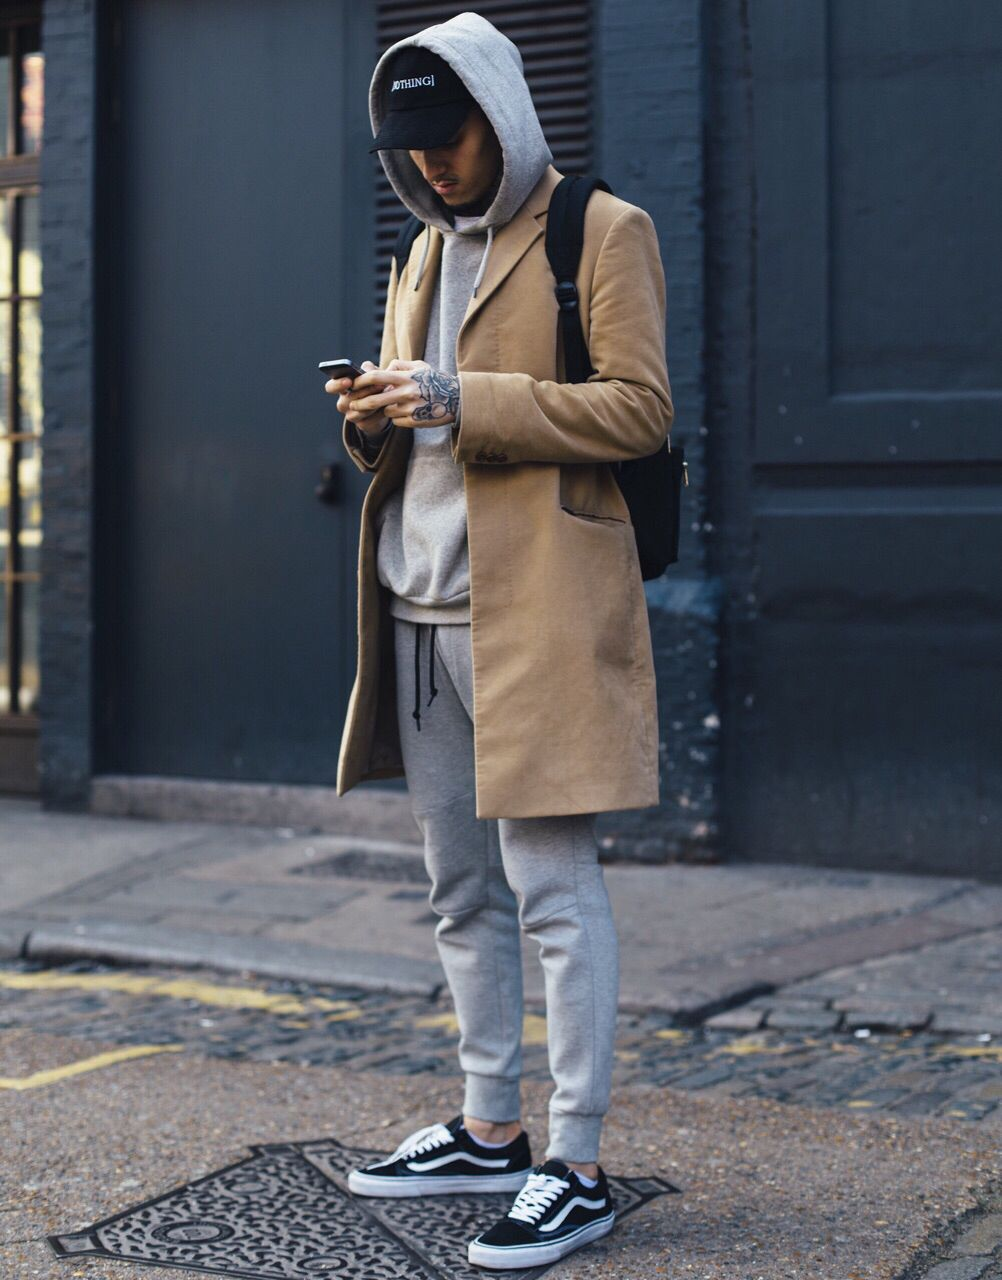 Topcoat with hoodie